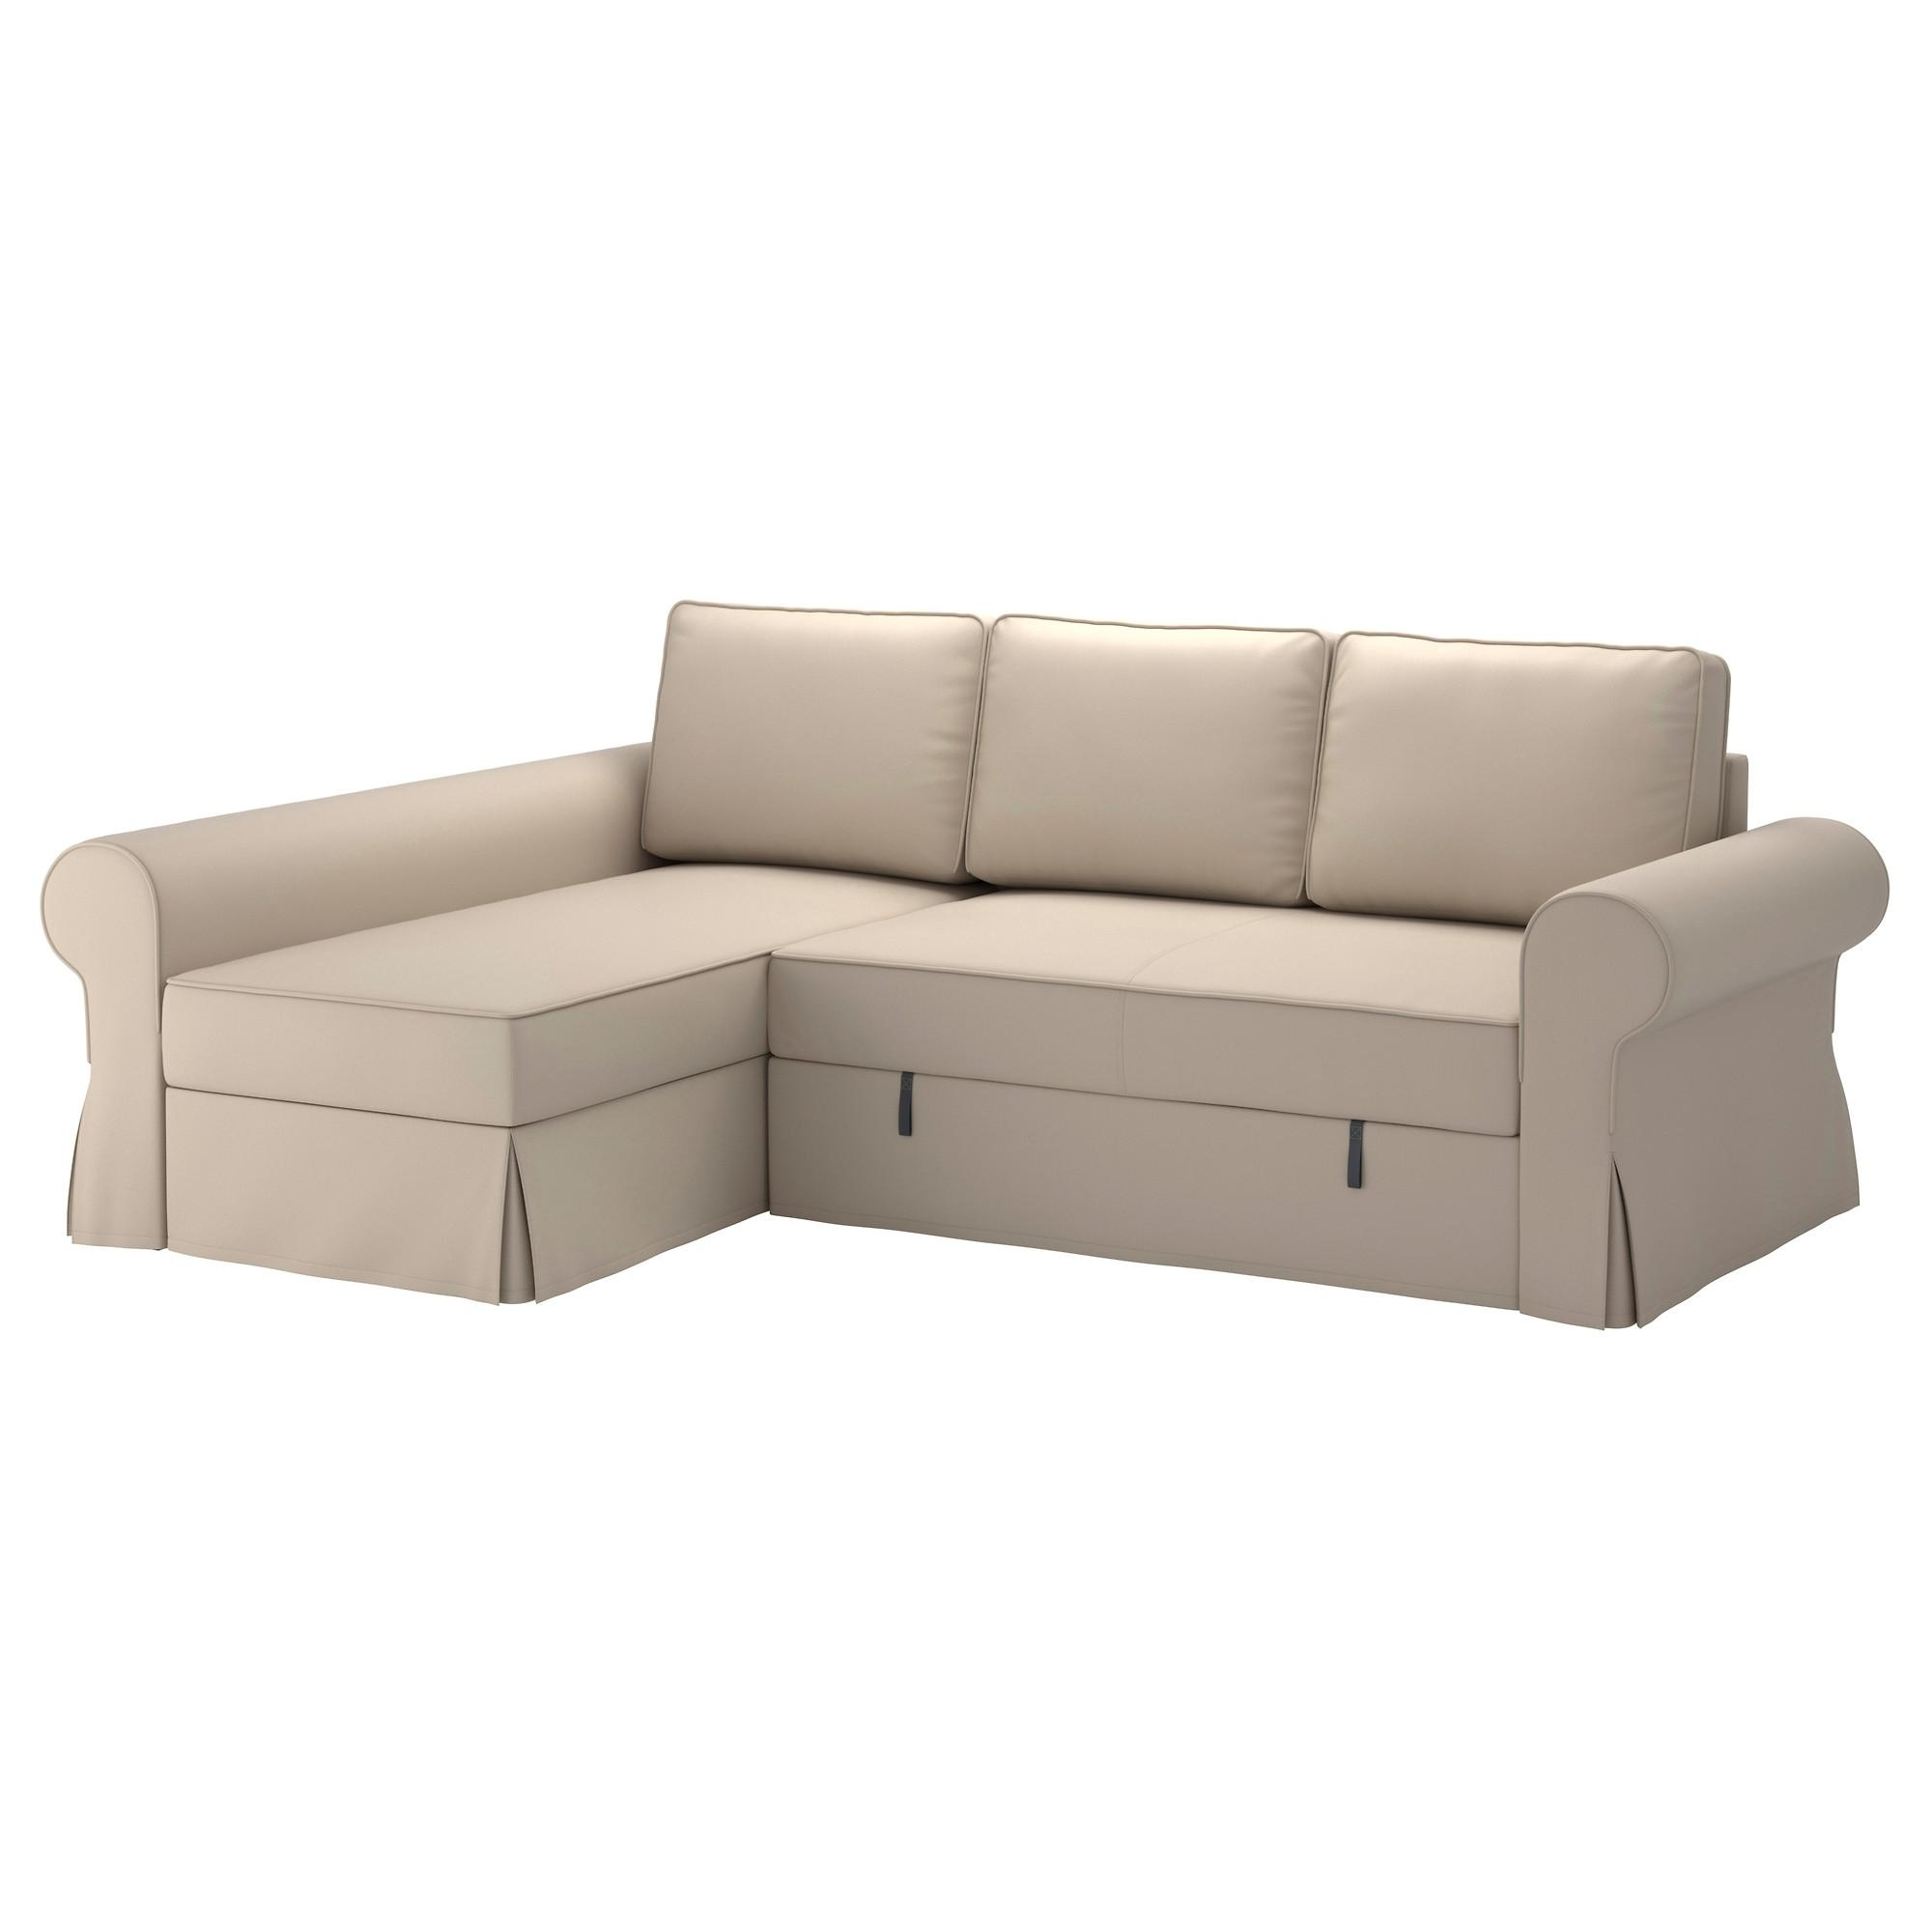 20 photos ikea chaise lounge sofa sofa ideas for Chaise longue lounge